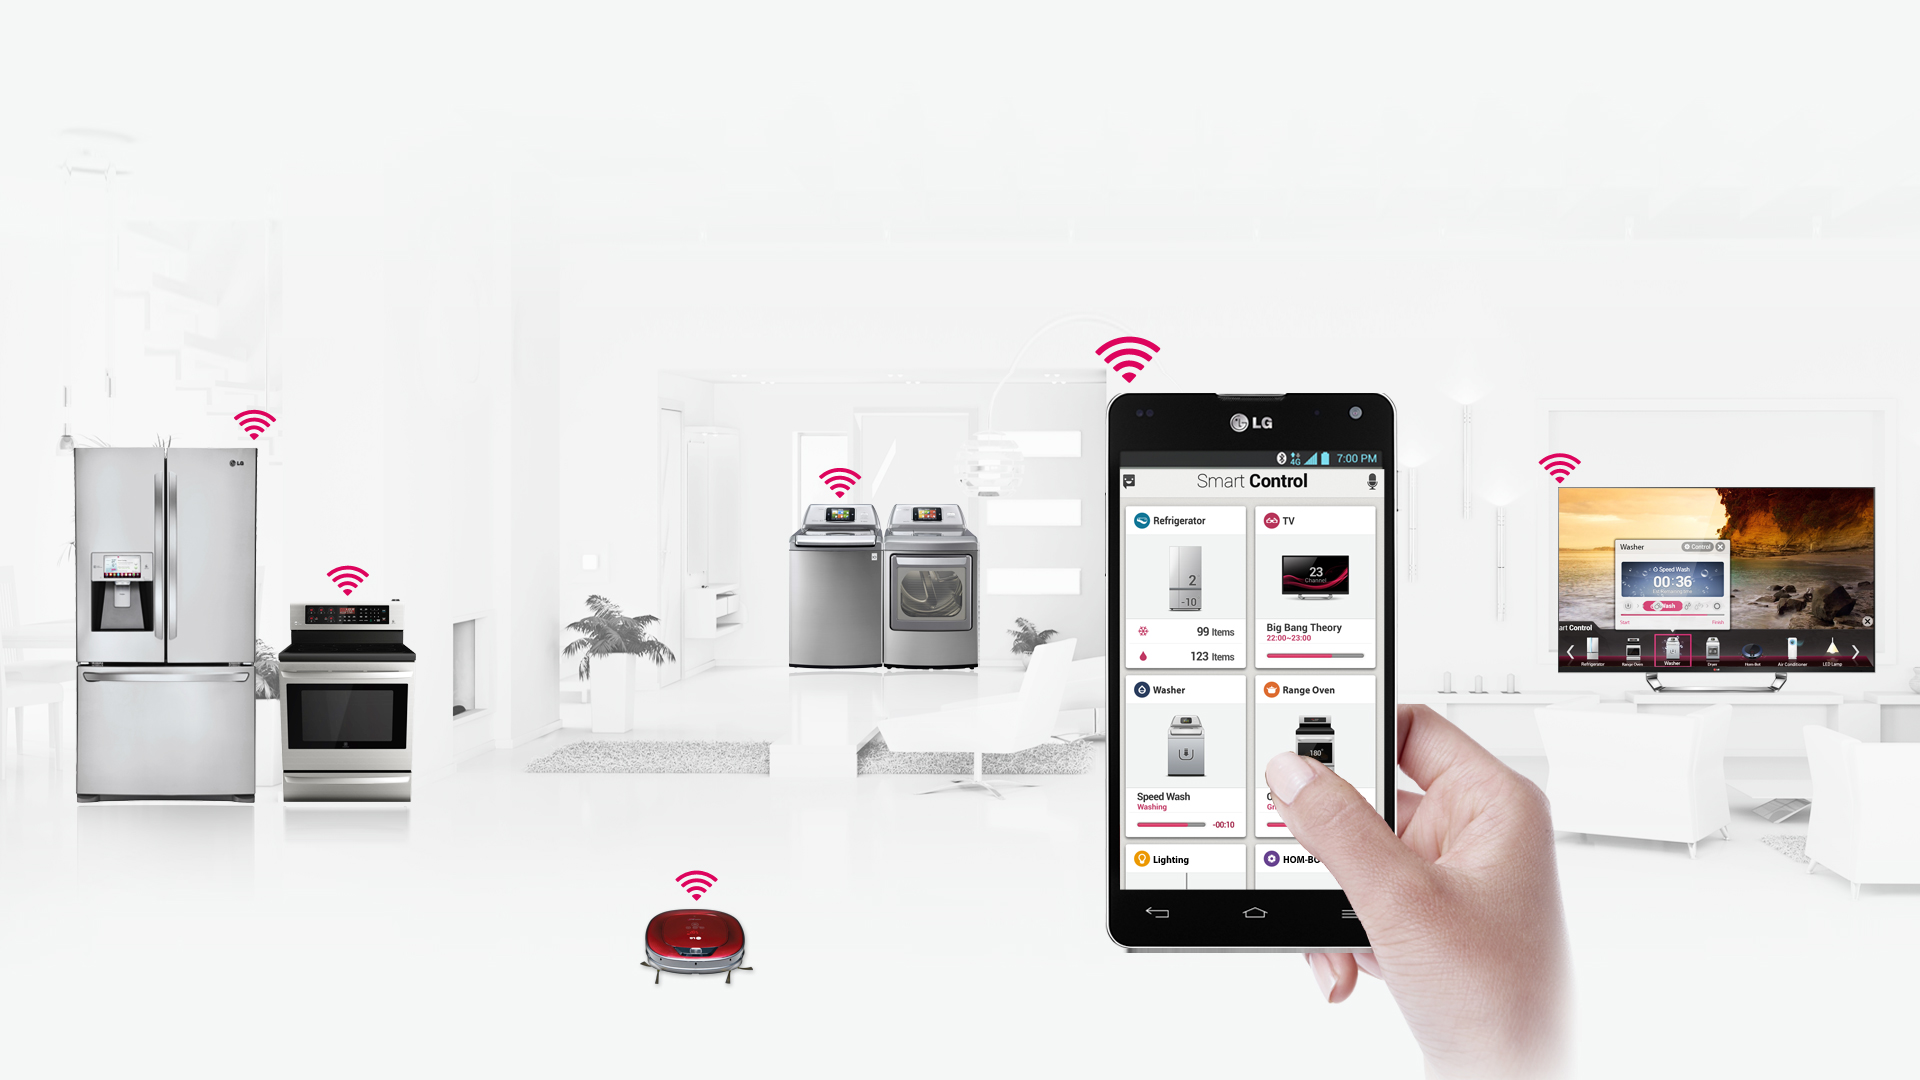 A picture showing how the Smart Home Service as well as its convergent home appliance management system, SmartControl, lets the user control their LG home appliance and entertainment products from a single location